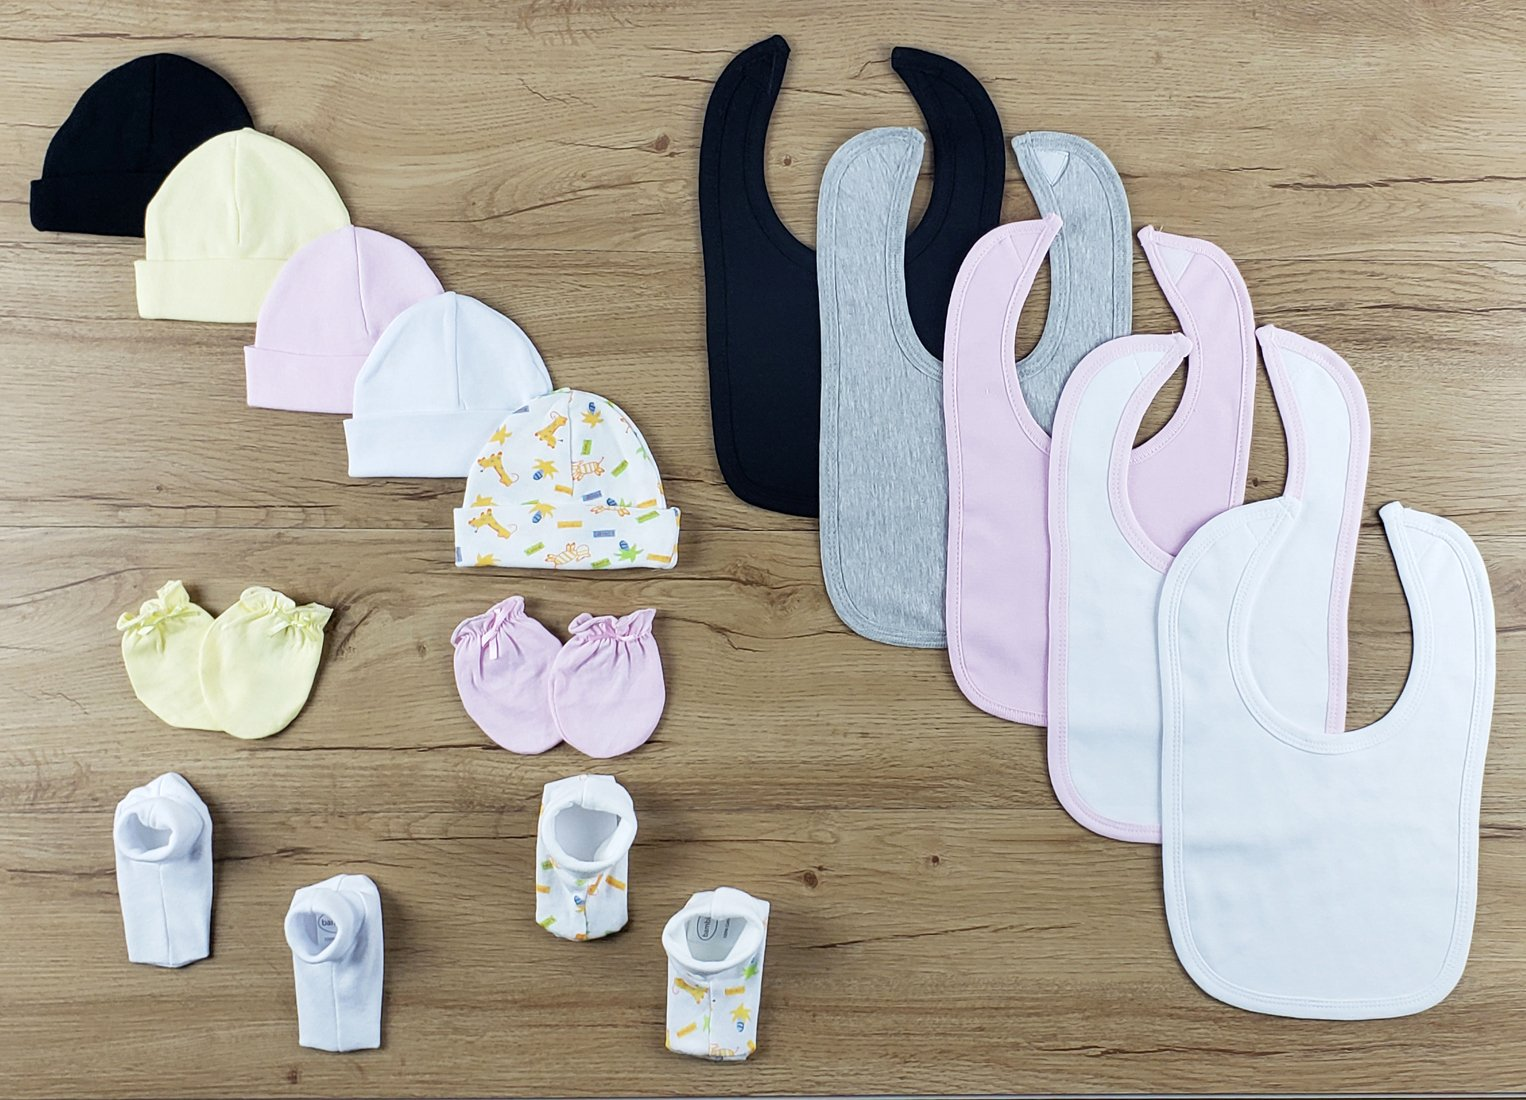 Bambini 15 PC set of Bibs, Caps, Booties - Baby World Inc